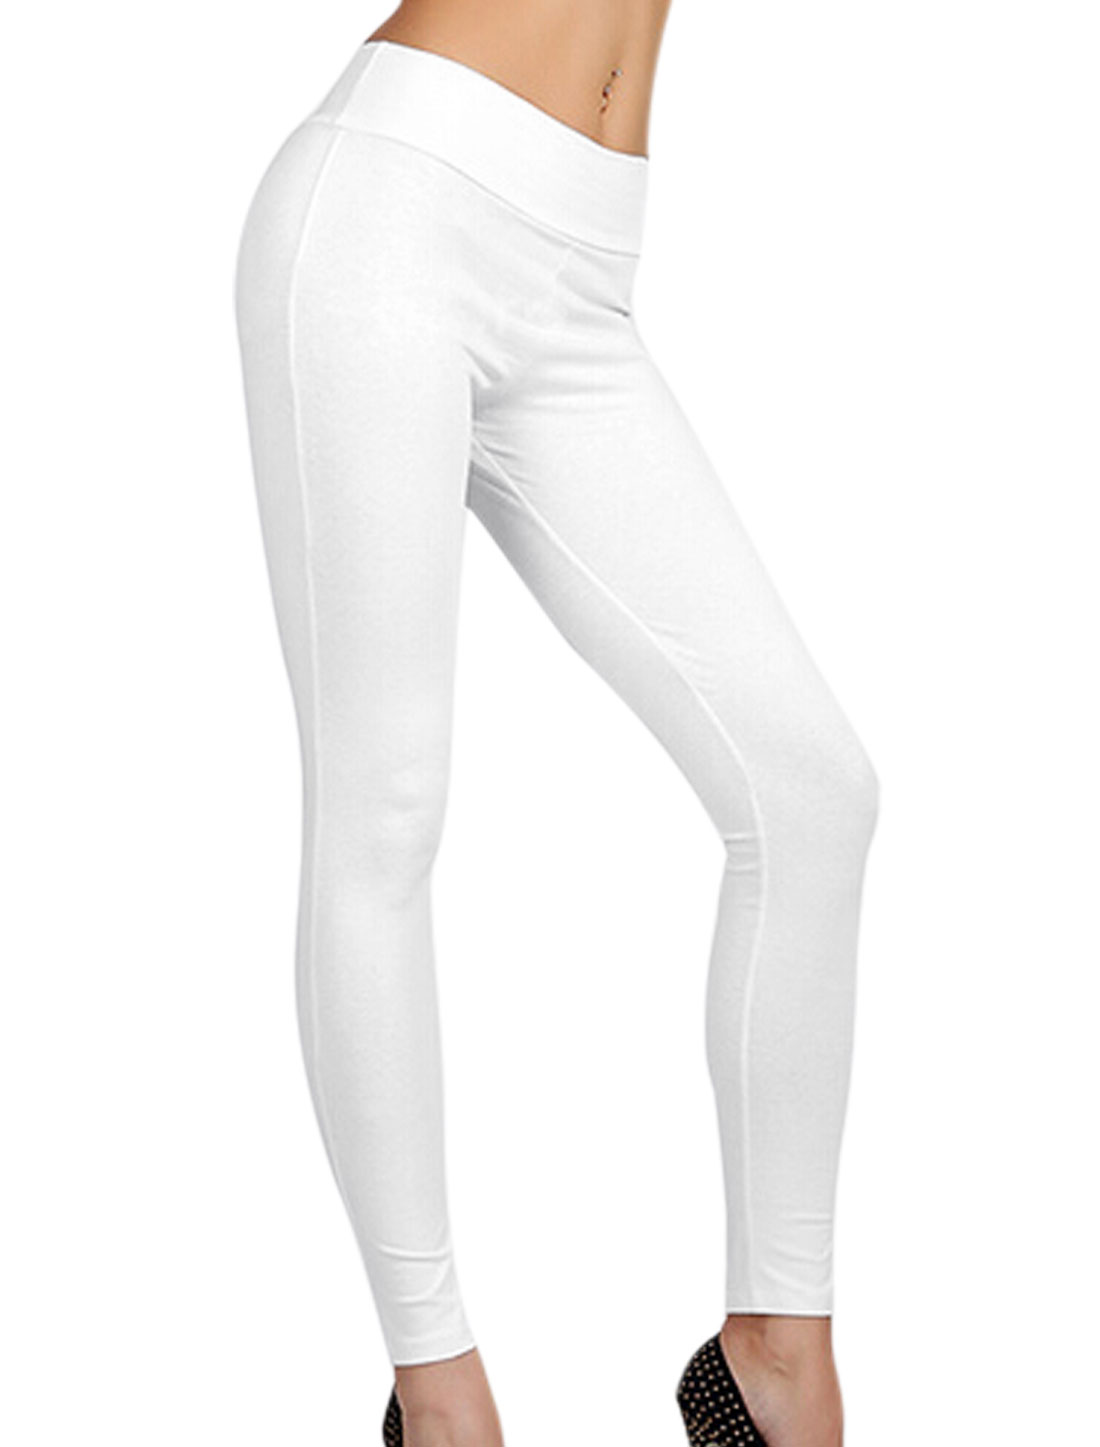 Women Natural Waist Zip Up Back Casual Leggings White XL